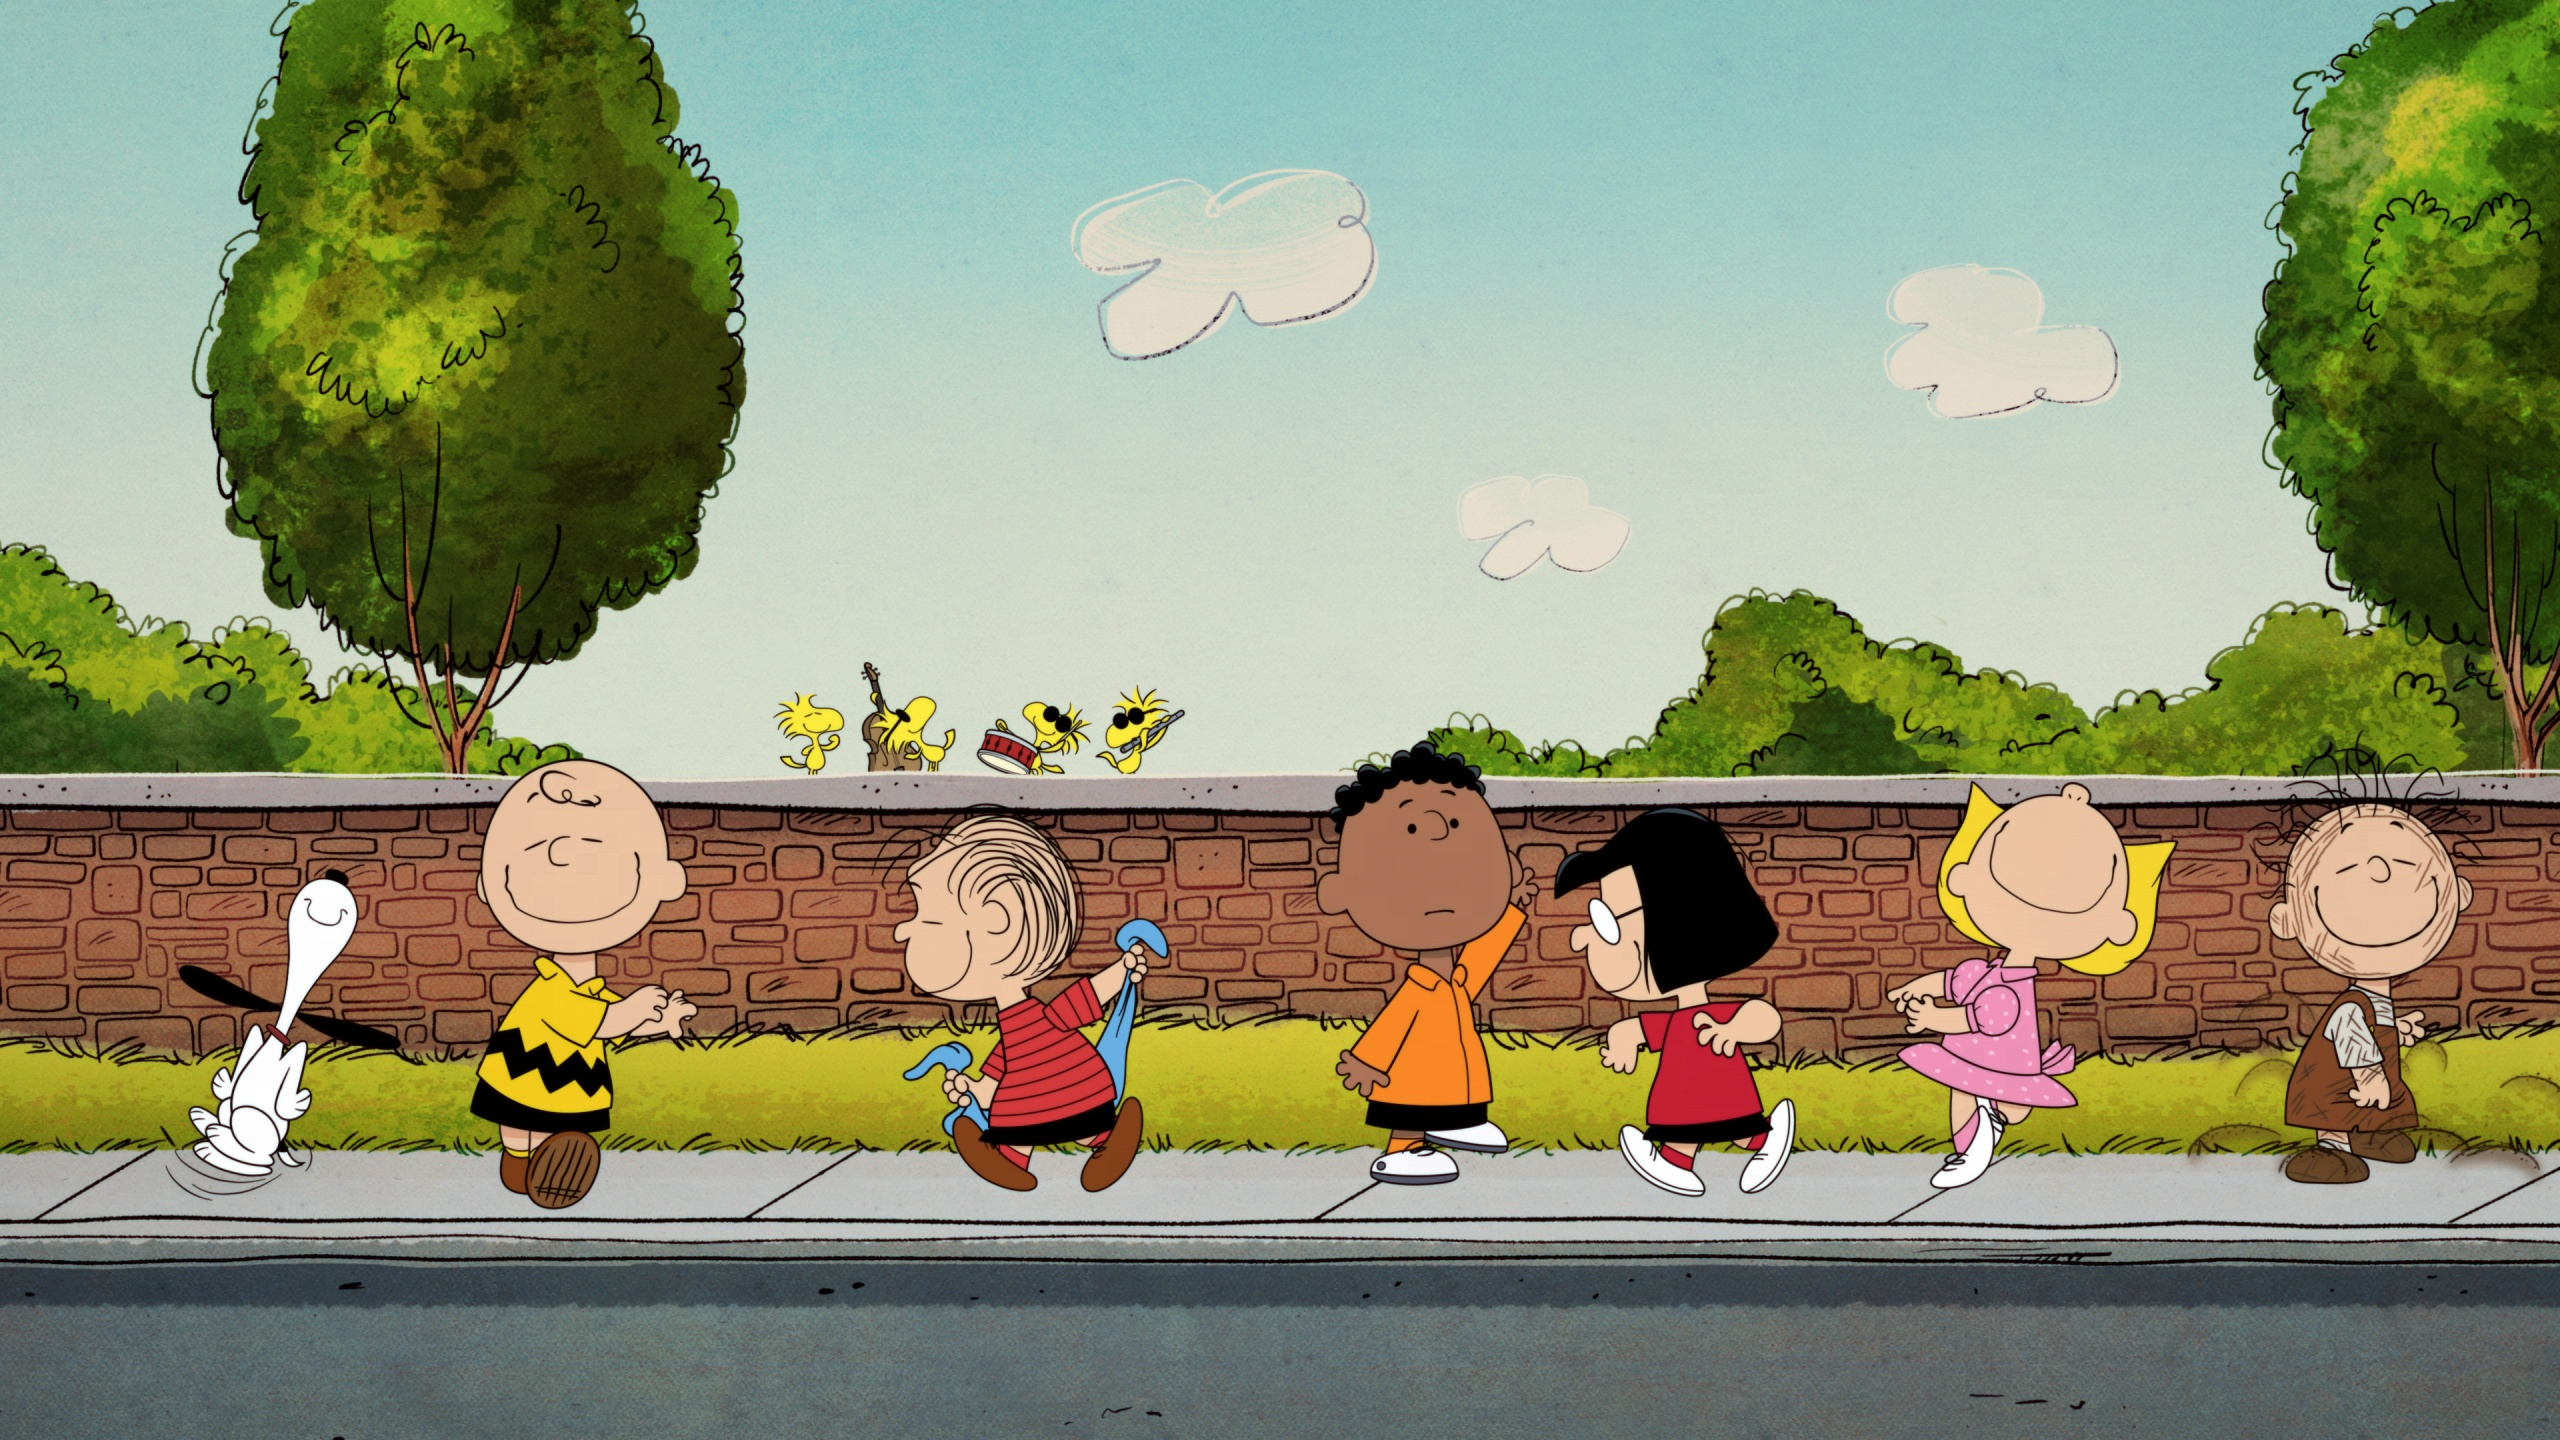 """The """"Peanuts"""" gang comes to Apple TV+ for new original shows and specials. (Image courtesy Apple TV+ Press)"""